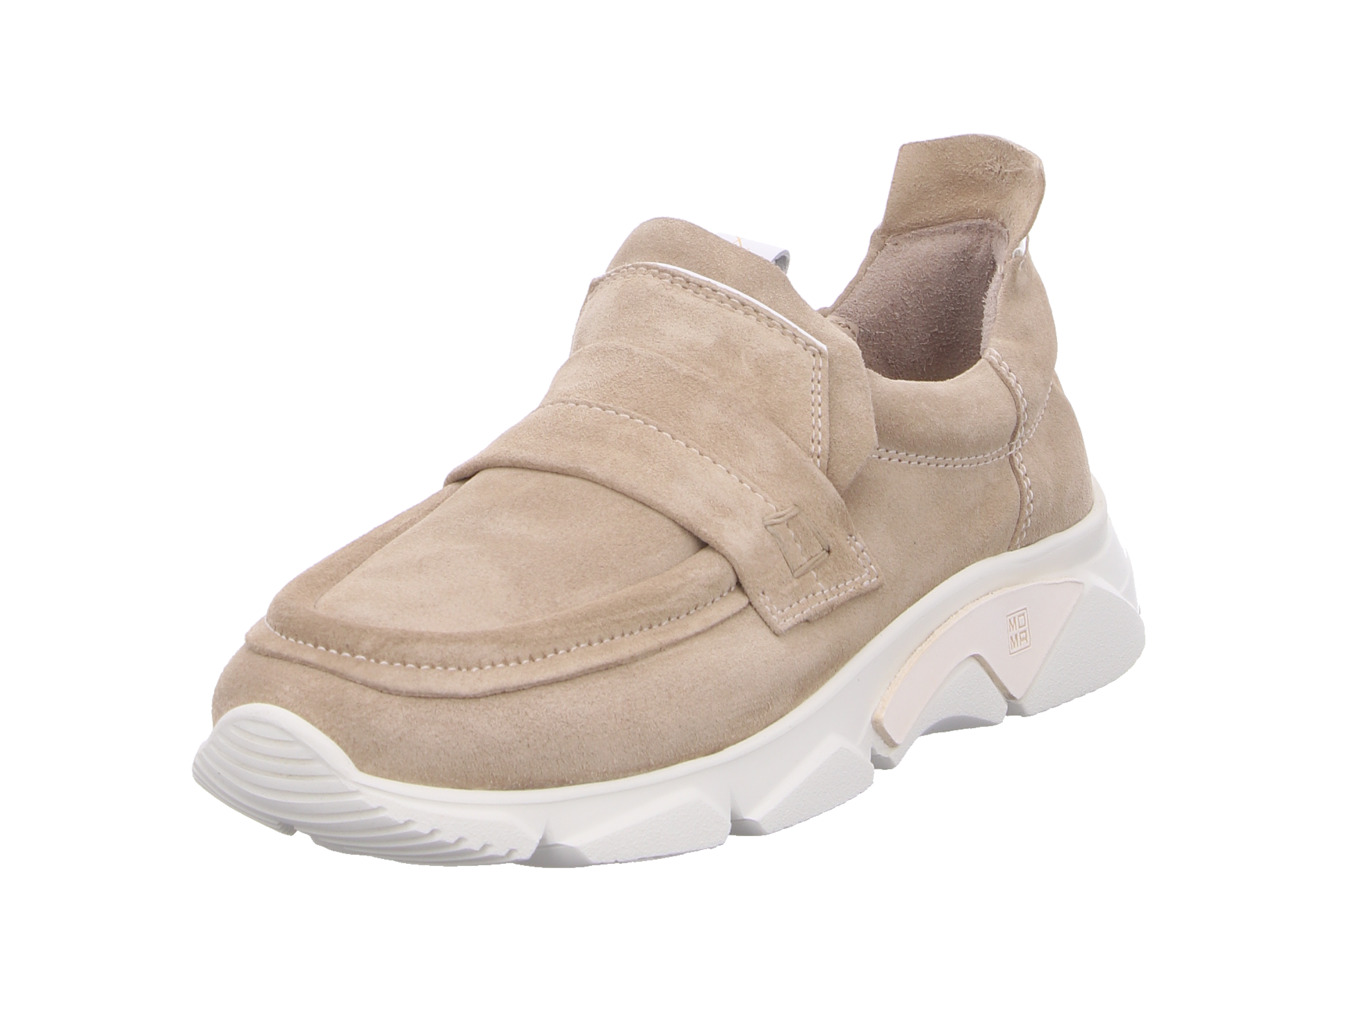 moma_pantofola_donna_beige_hell_3fs102_to_toy_visone_1145